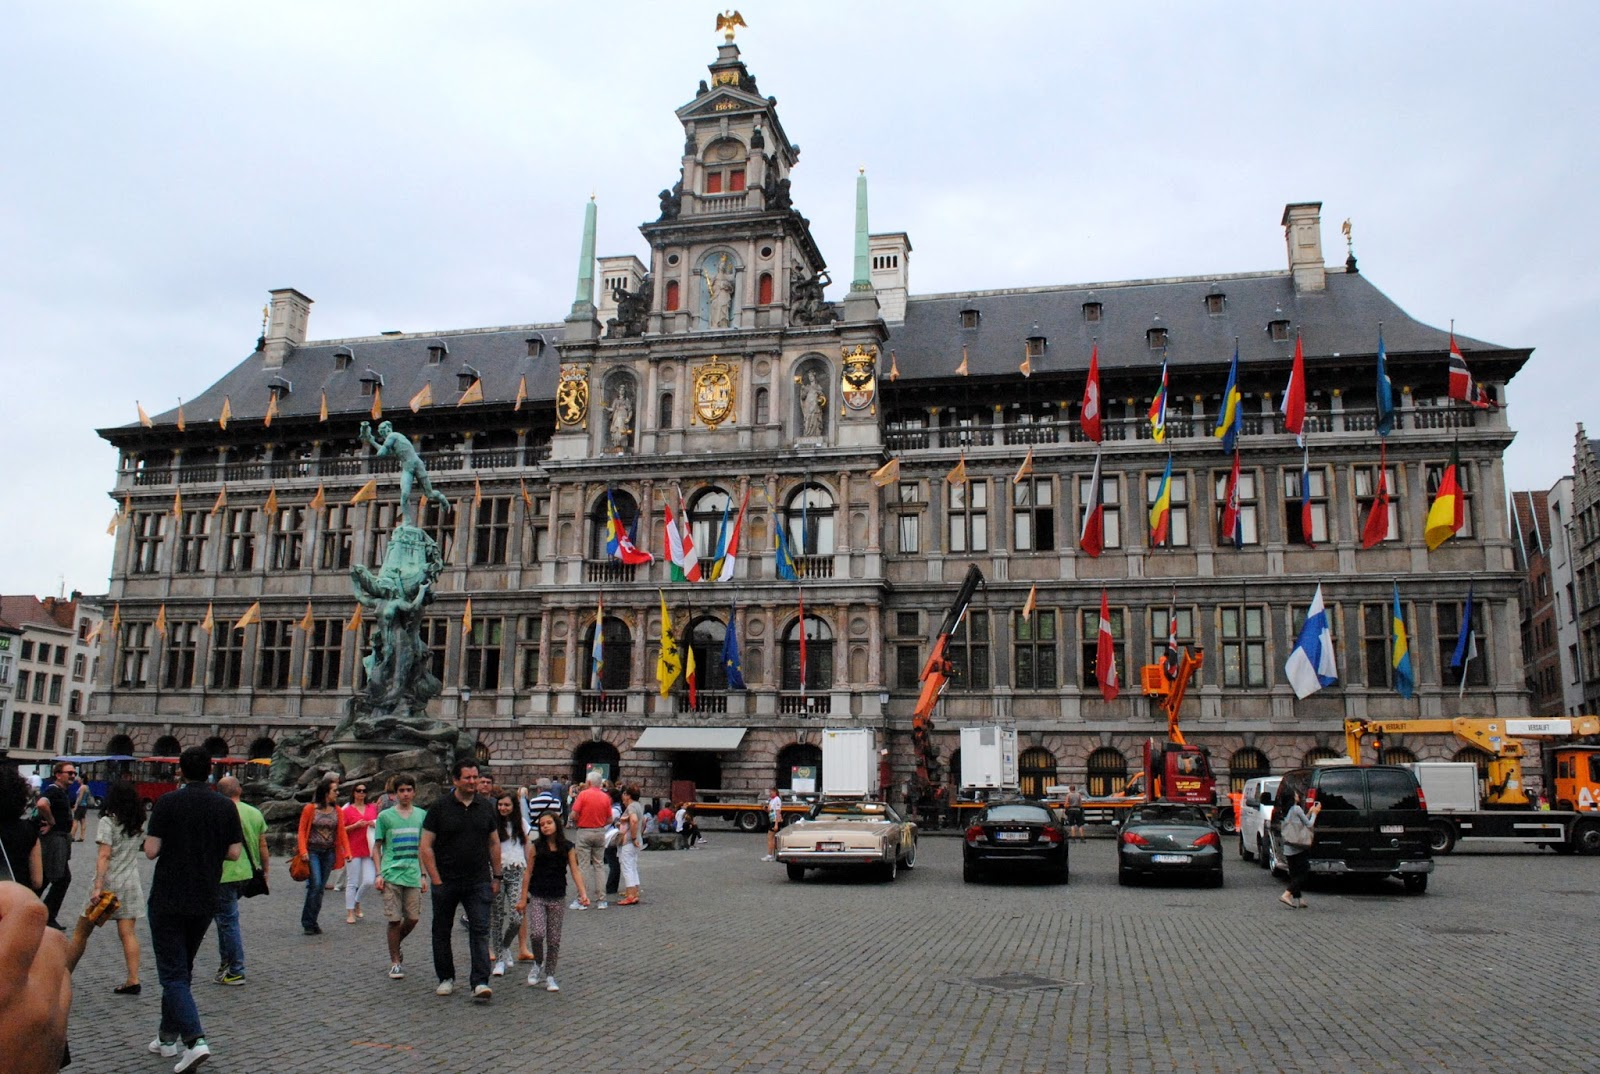 grand place Grote Markt